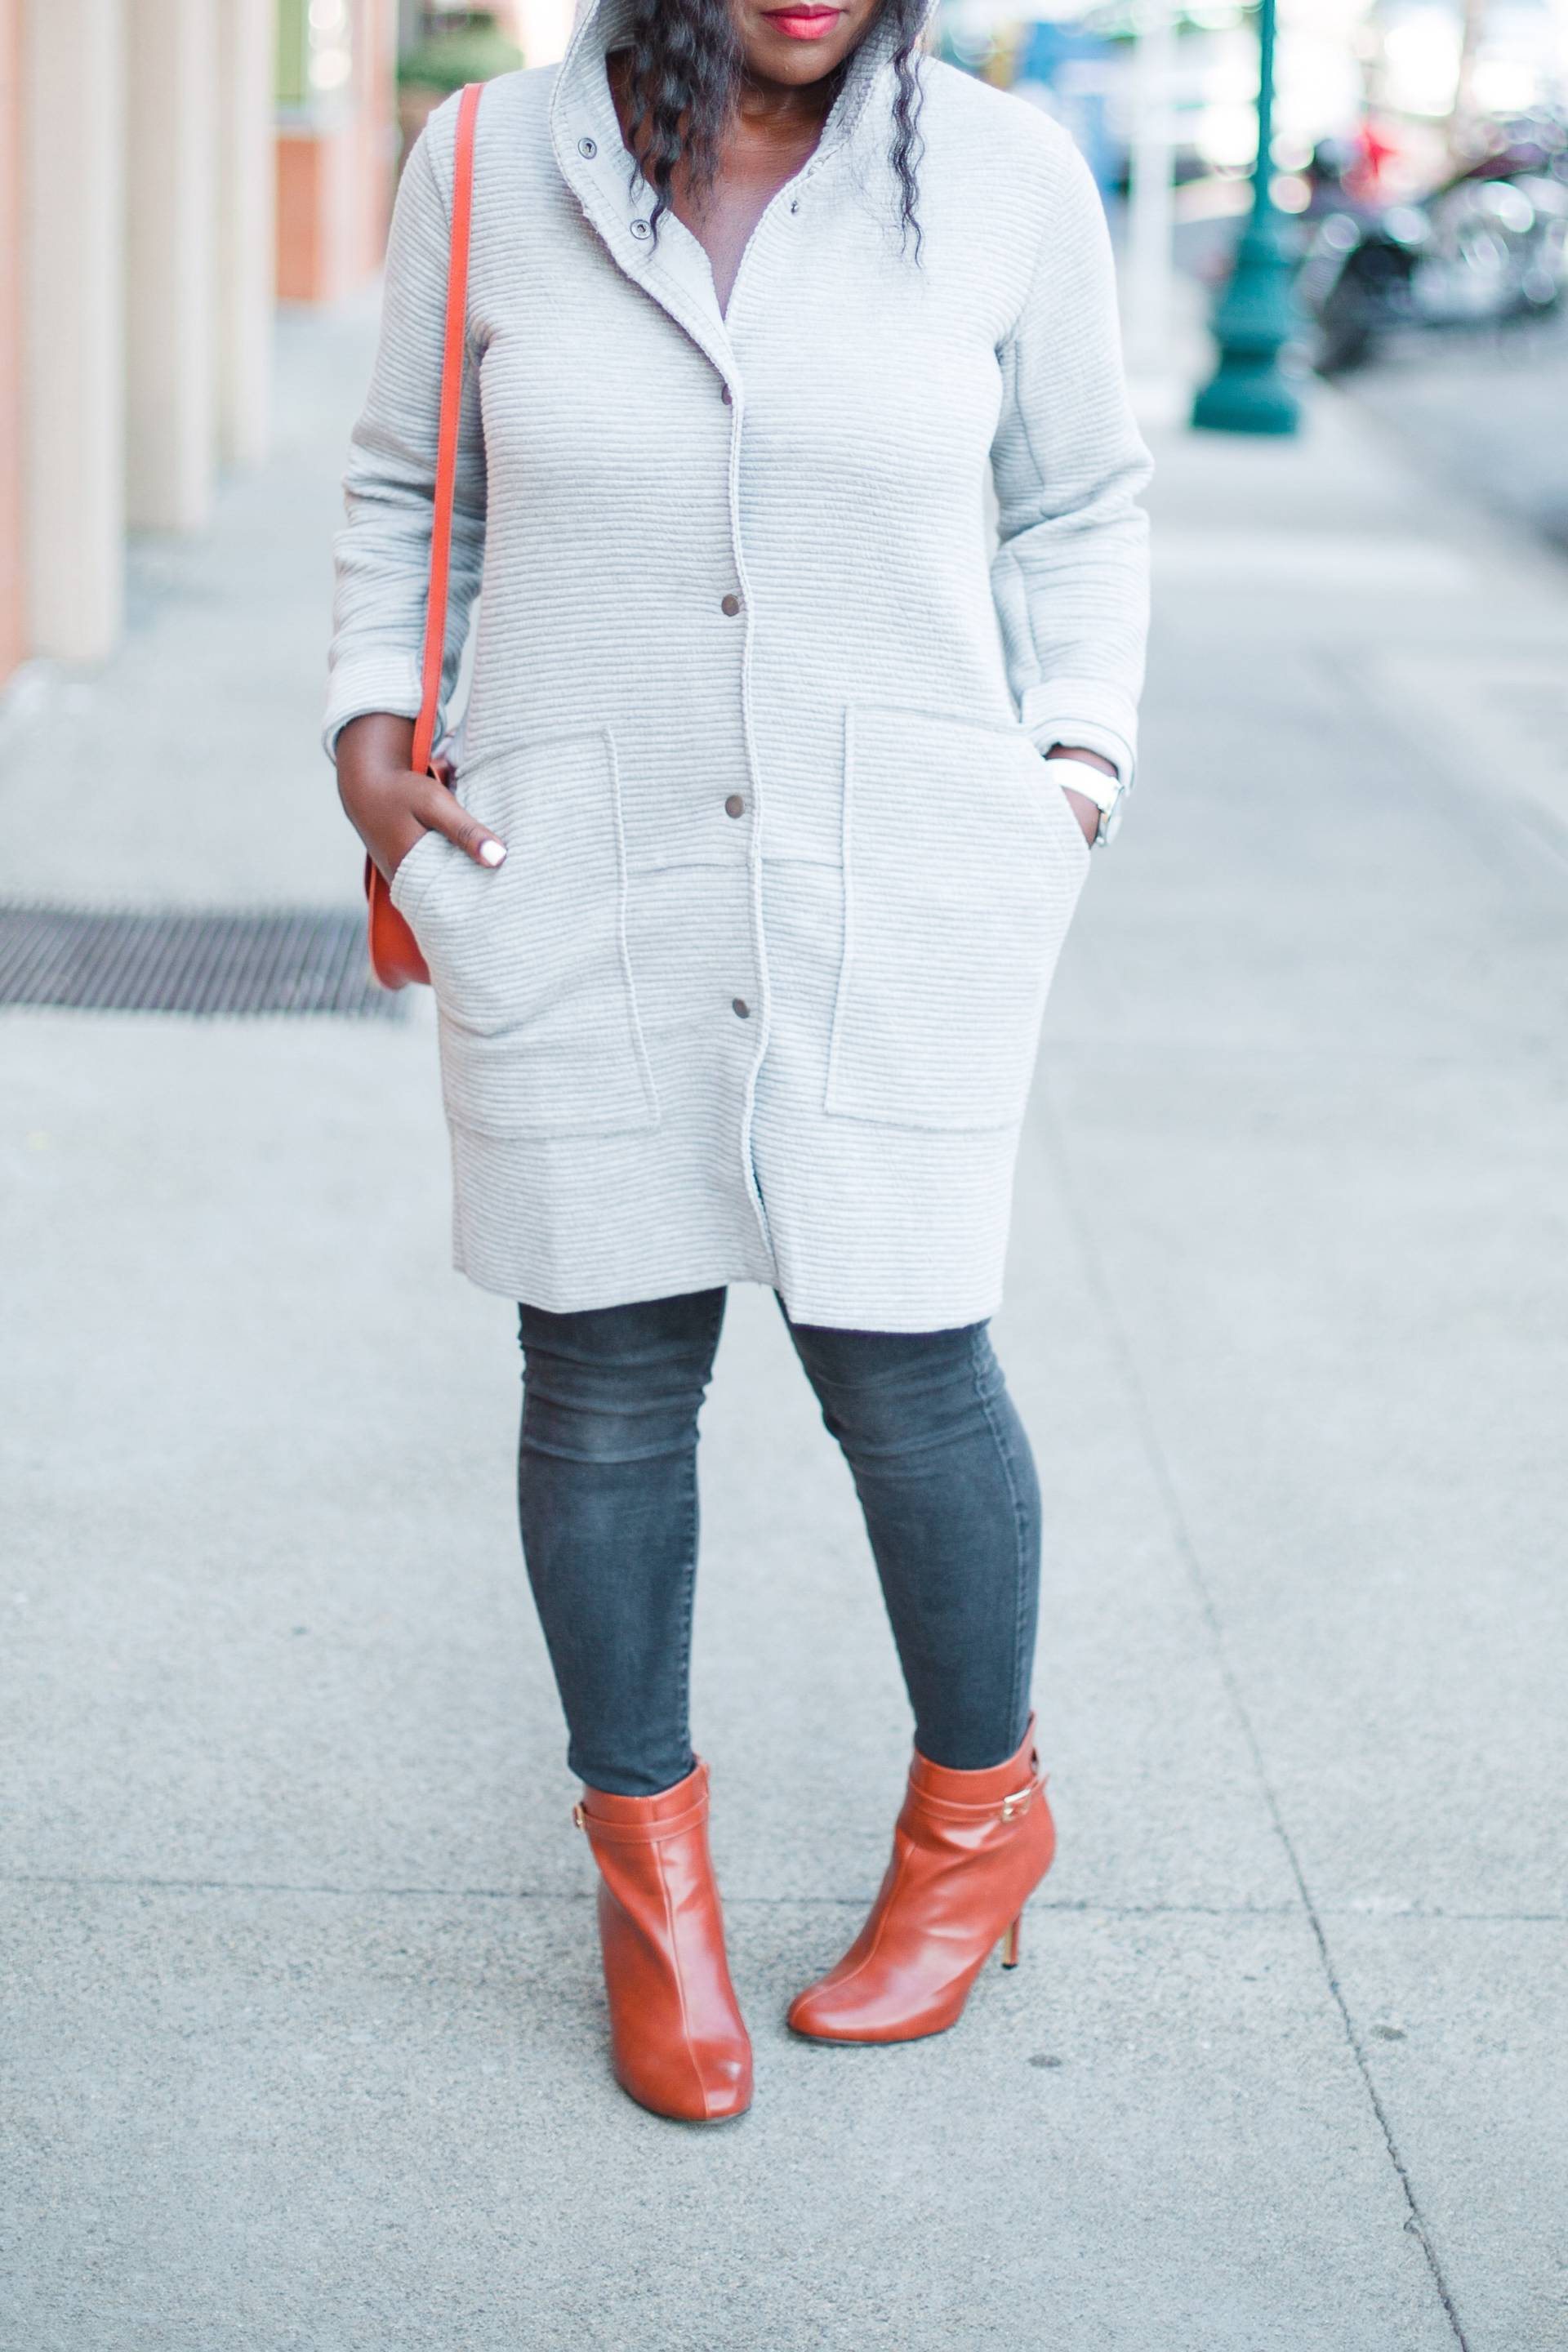 Evy's Tree Light Weight Jacket | Transition To Fall